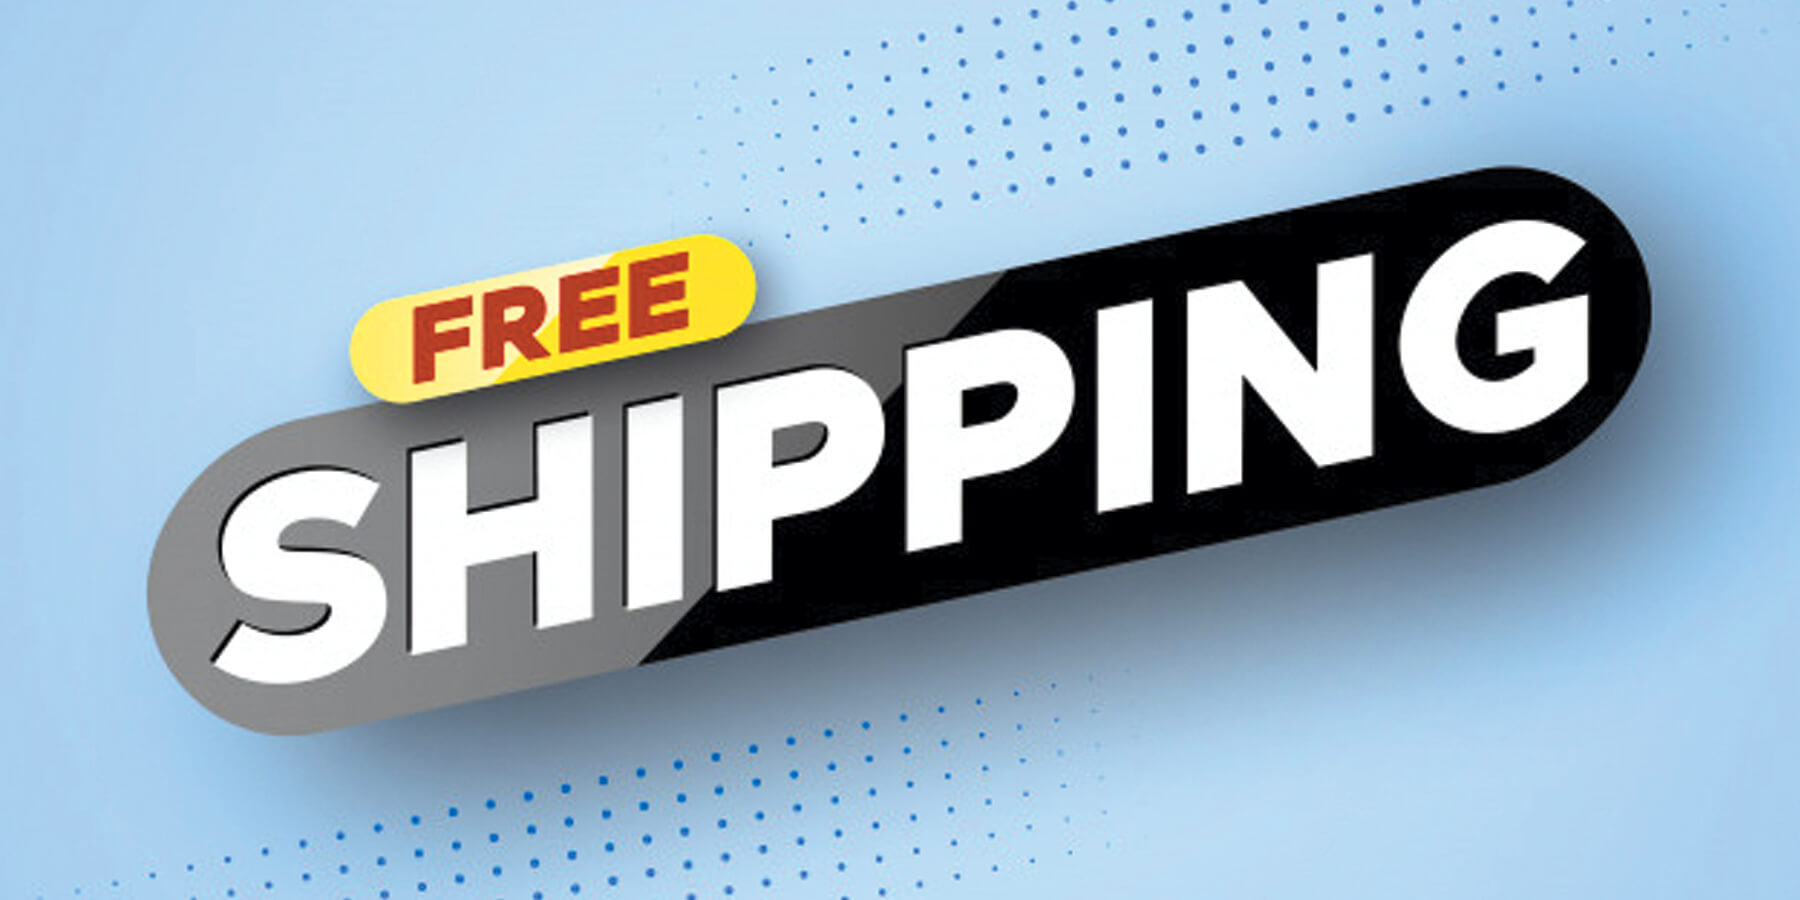 stores with free shipping in pakistan